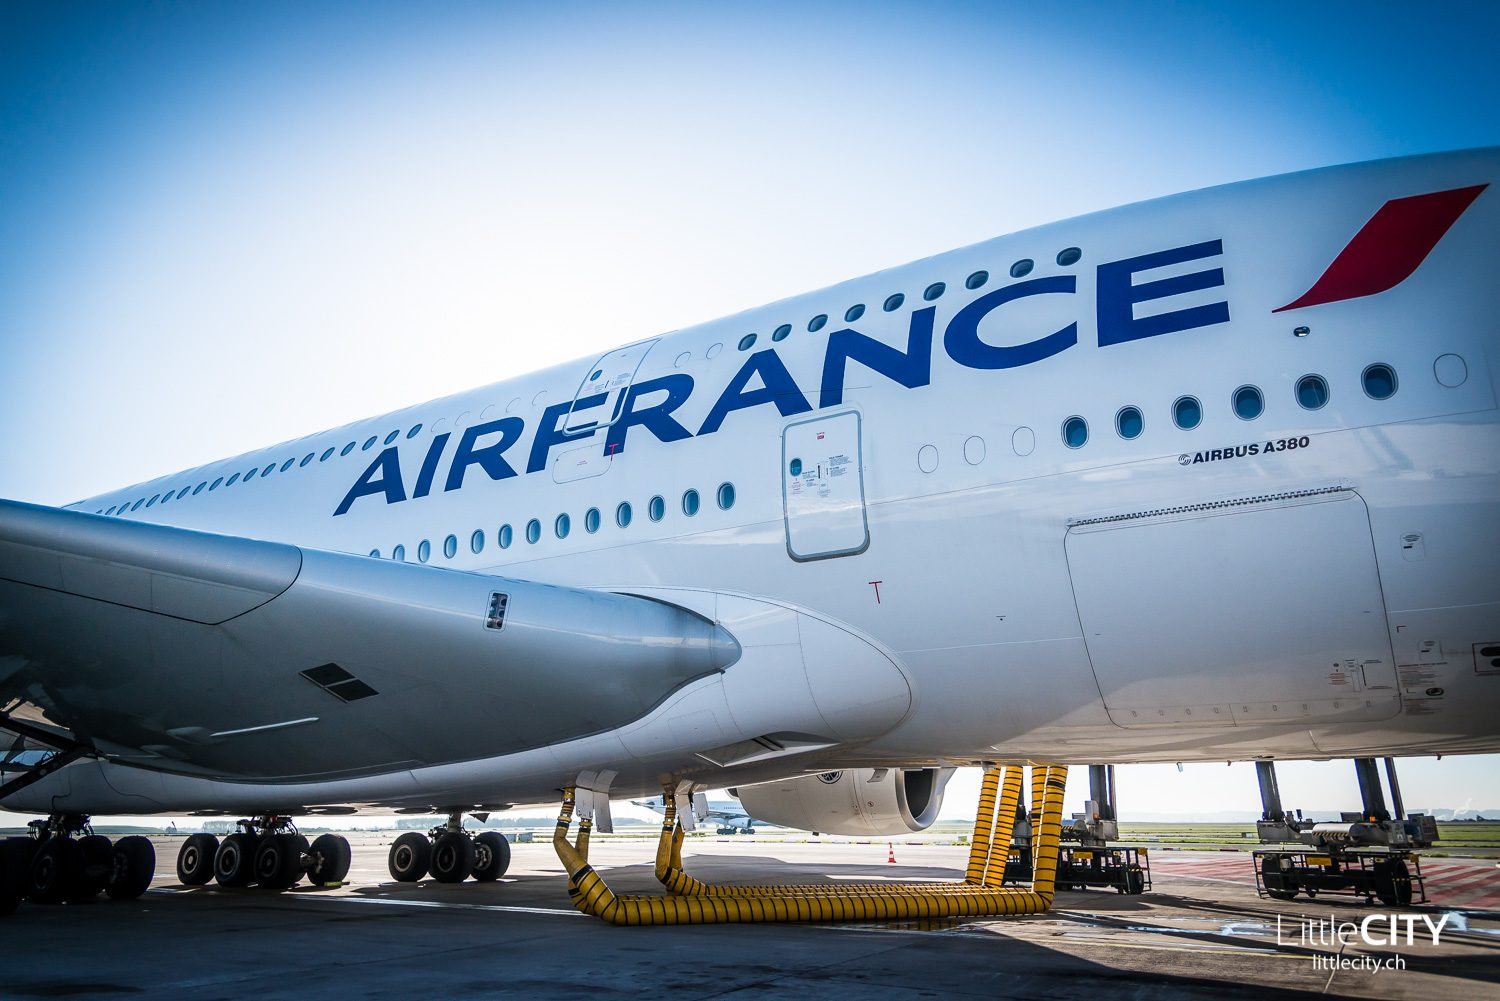 Air France A380 - Backstage Charles de Gaulle Paris